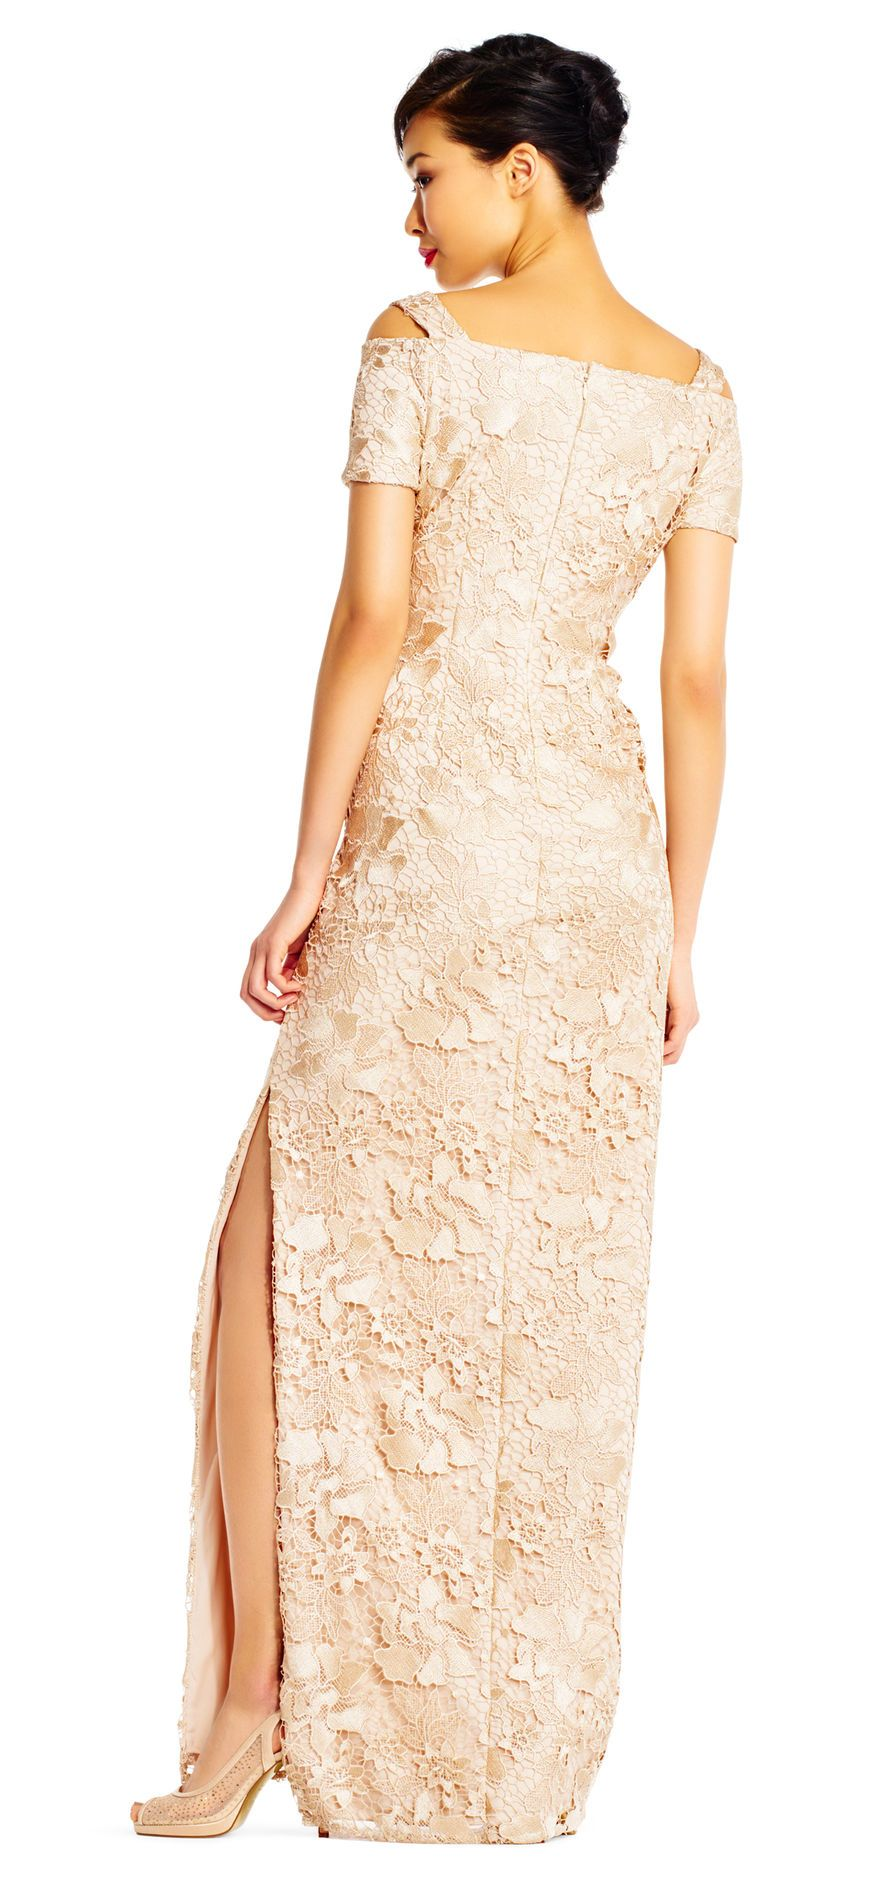 Adrianna Papell Lace Column Dress with Cold Shoulder